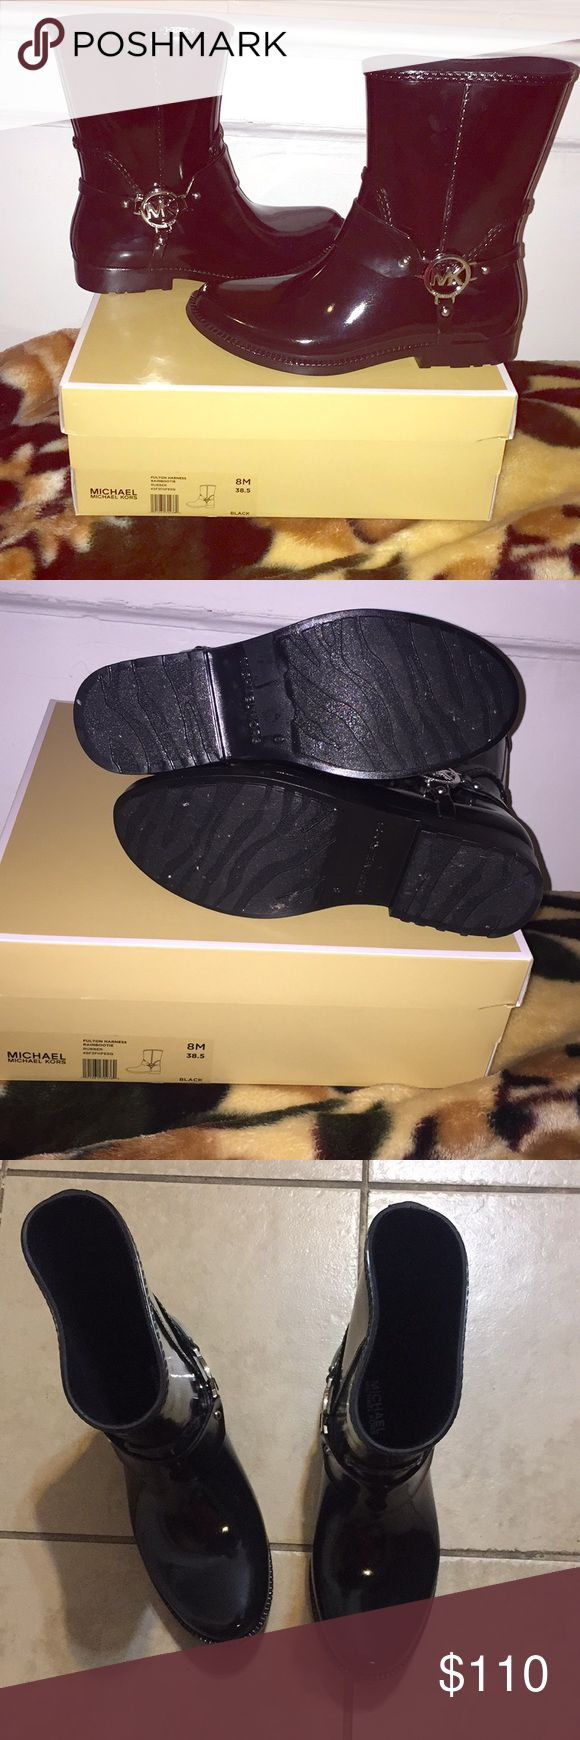 Michael Kors Fulton rain booties Only worn them once   Size 8M Color black Comes in the box as shown MICHAEL Michael Kors Shoes Winter & Rain Boots